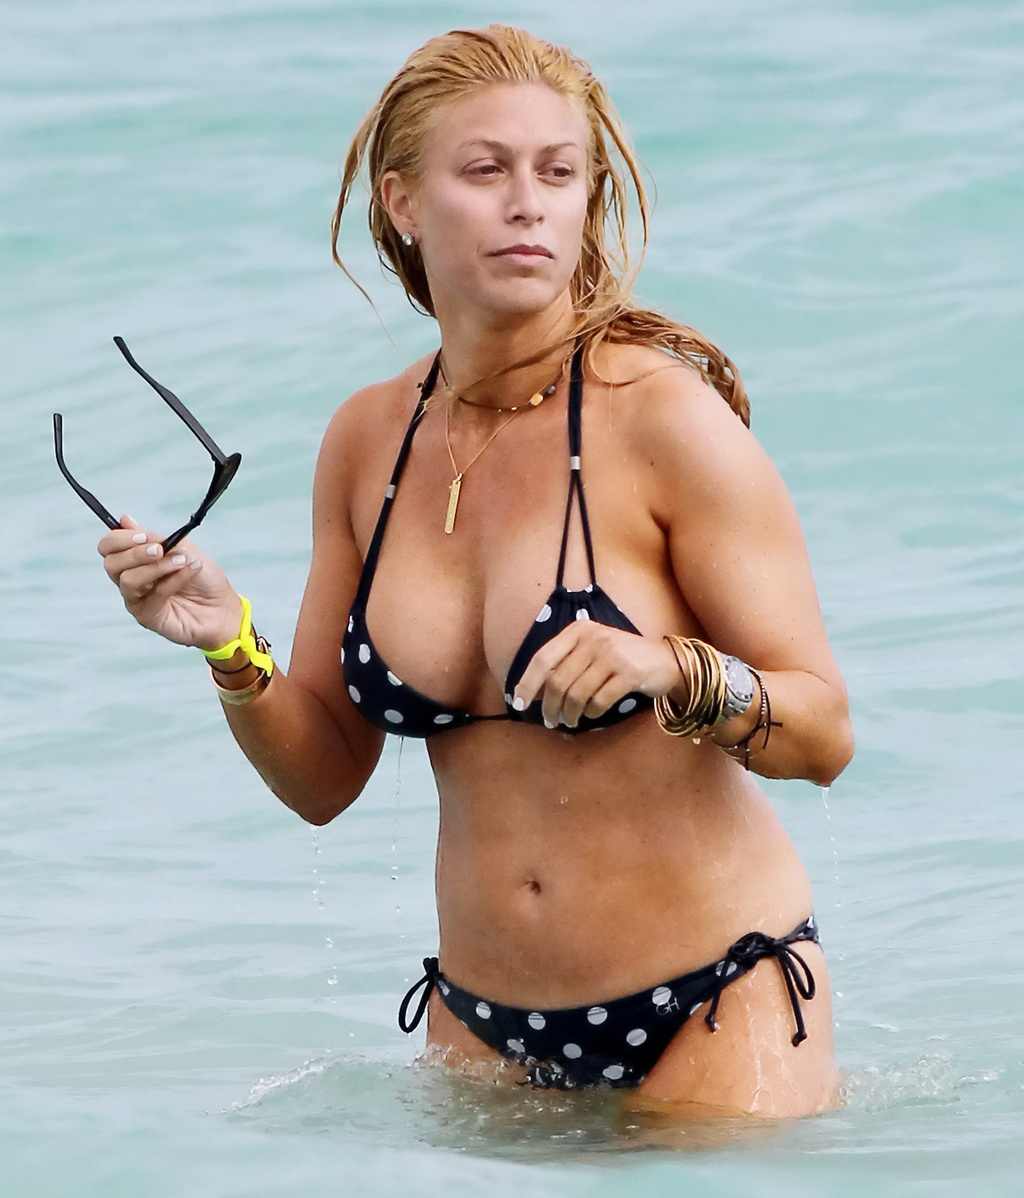 Jill Martin Exposes Her Curvy Body Wearing Skimpy Polka Dot Bikini In Miami Beach